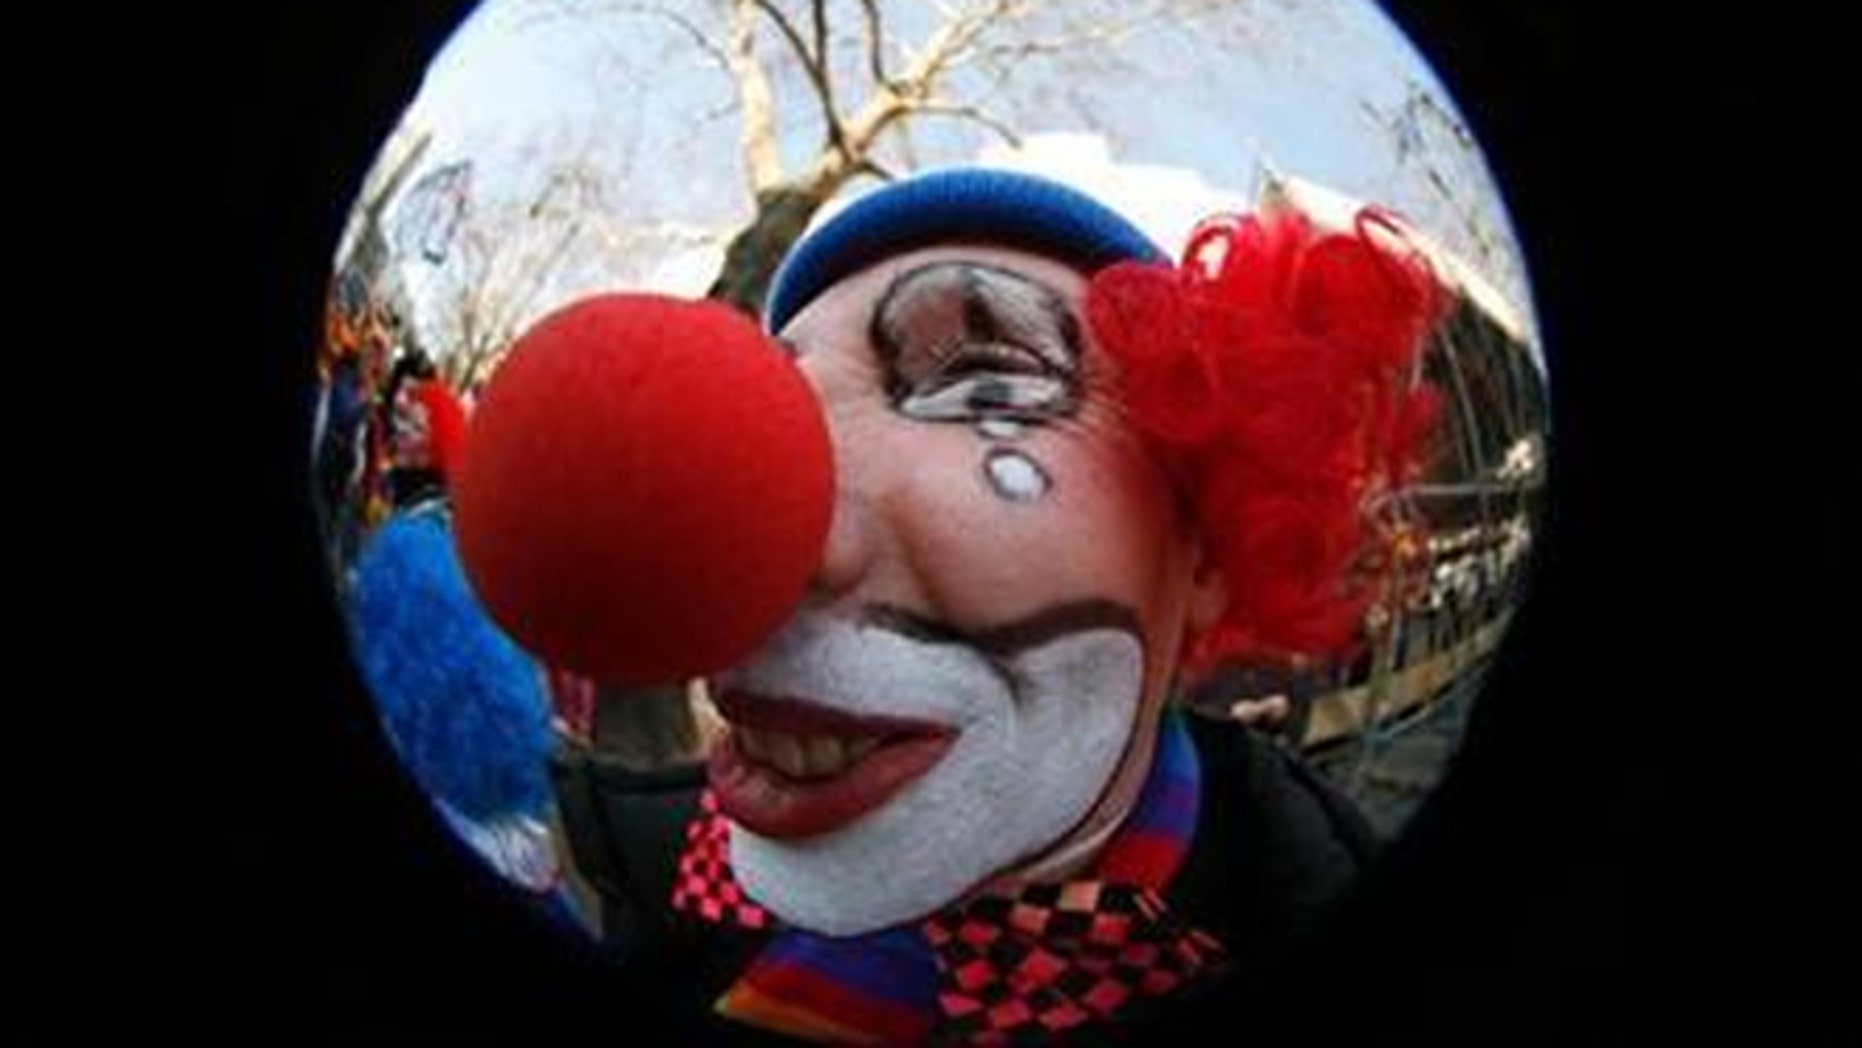 """FILE: A spooky clown looking exactly like Pennywise clown from the Stephen King-inspired 1990 horror film, """"IT"""" -- has appeared in several locations throughout Northampton, England since Friday, Sept. 13."""